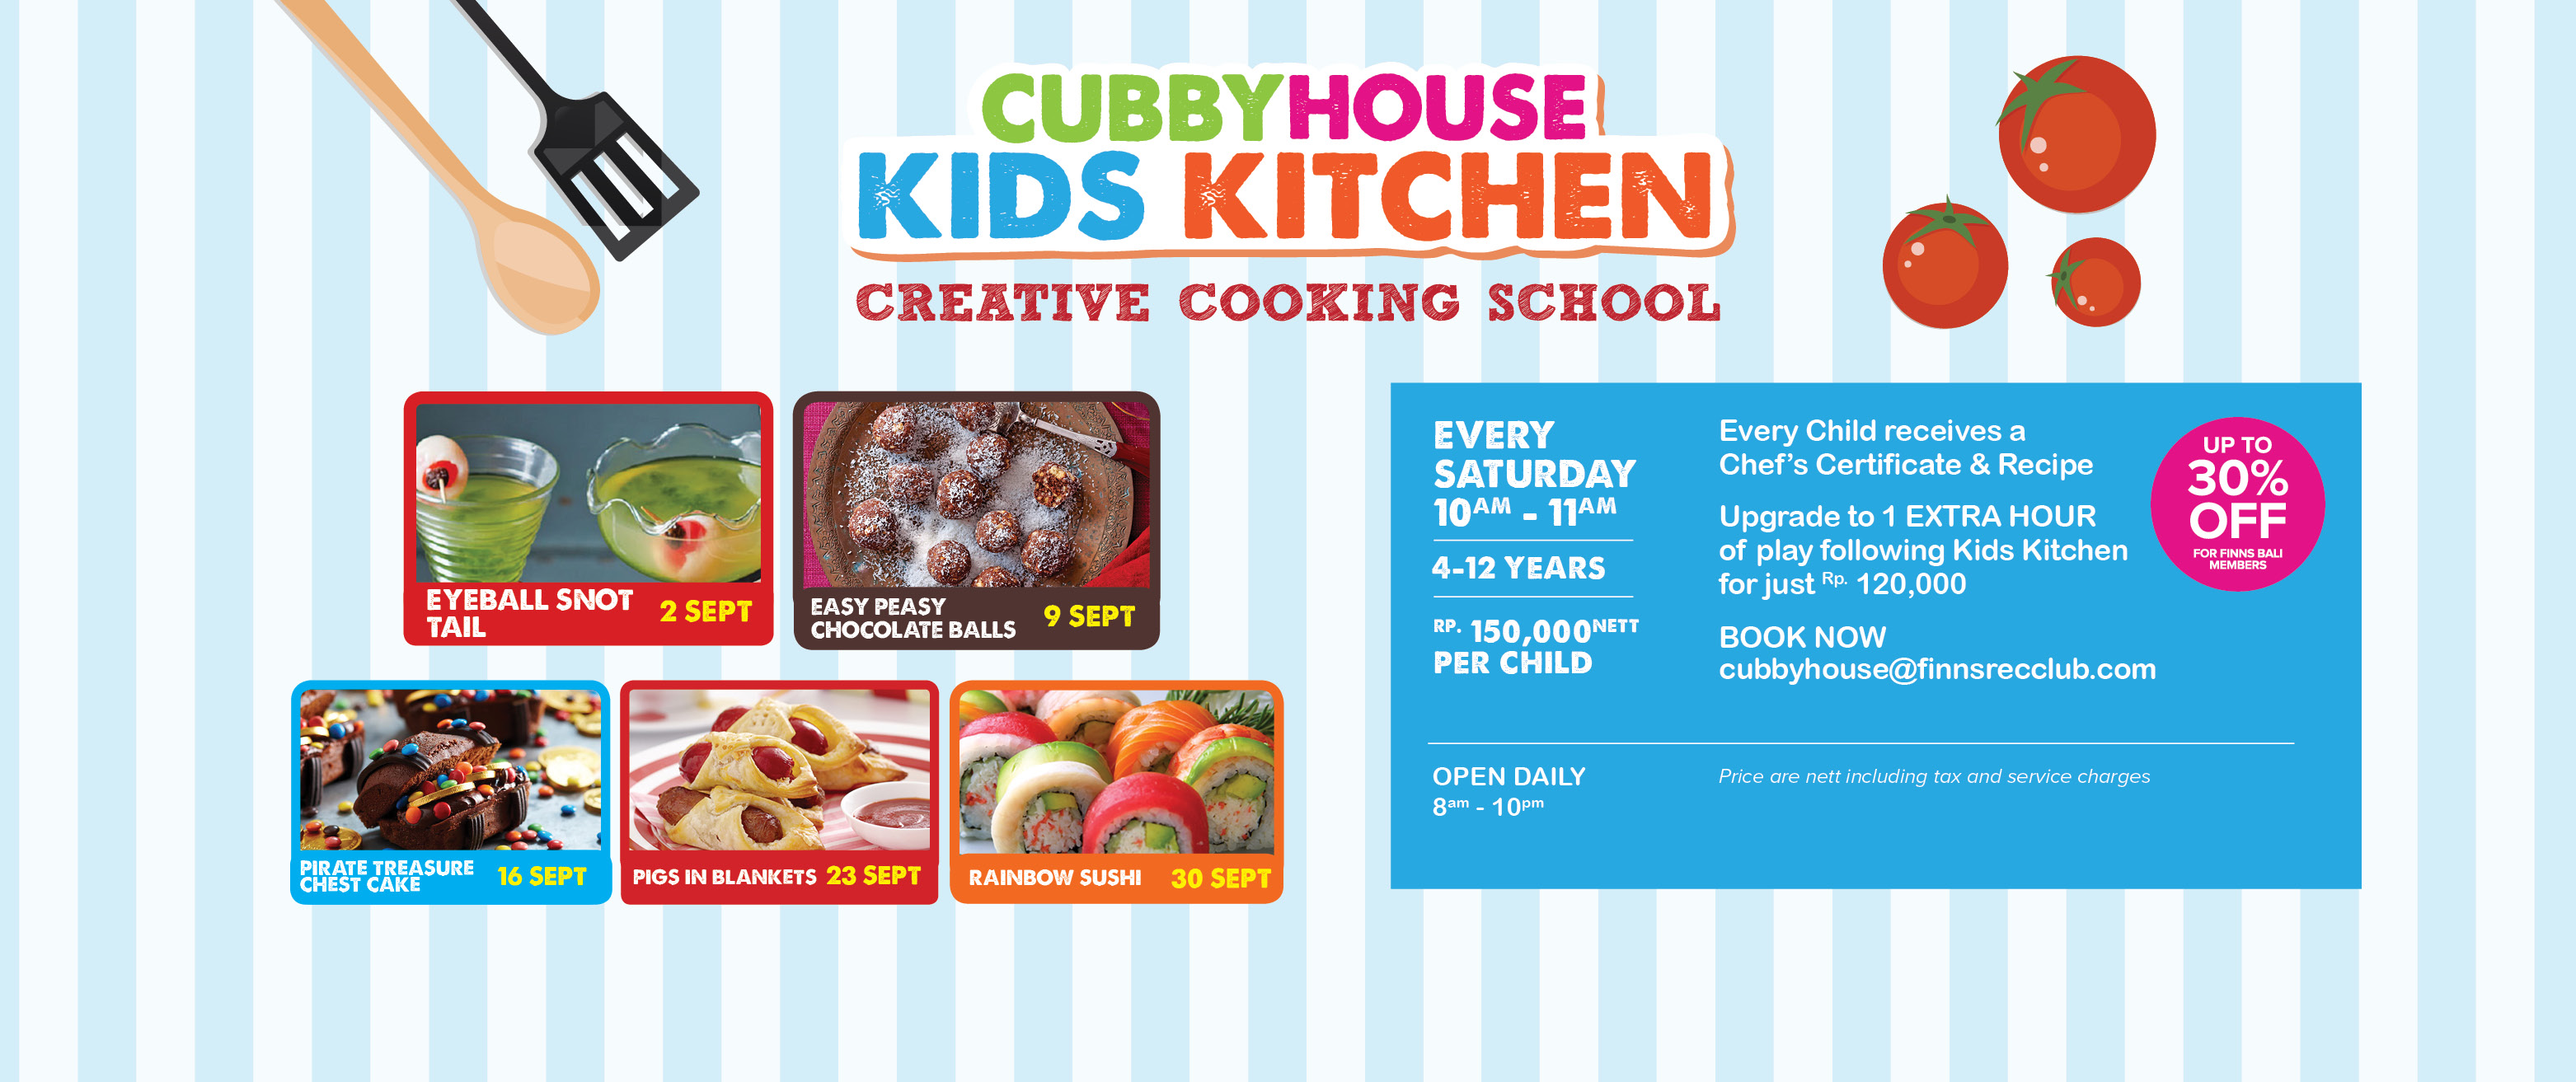 Cubby House Kids Kitchen – Pigs In Blankets | The Bali Bible